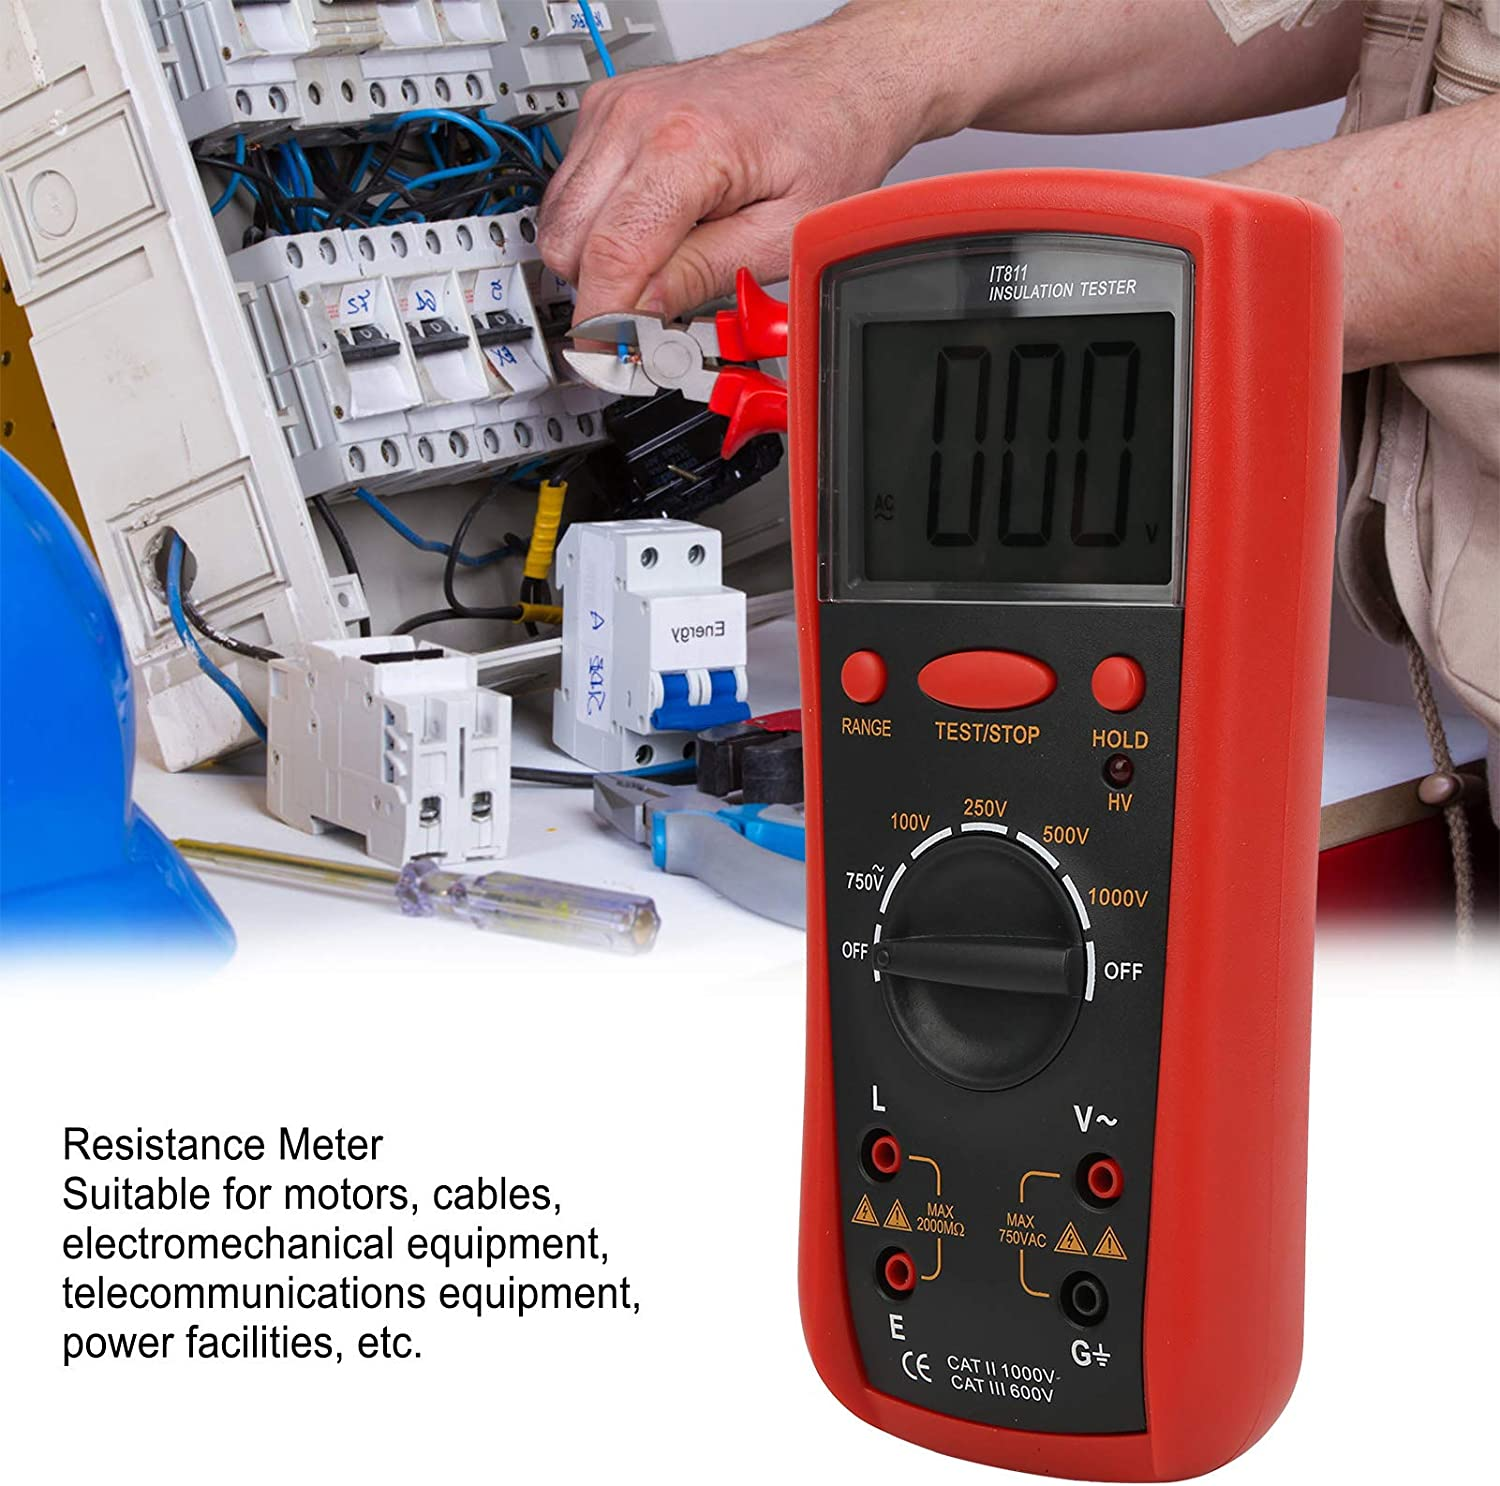 with LCD Display and Wide Measuring Range IT811 Insulation Resistance Meter Cables Electrical Tools for Insulation Resistance Testing of Motors Digital Megohm Tester